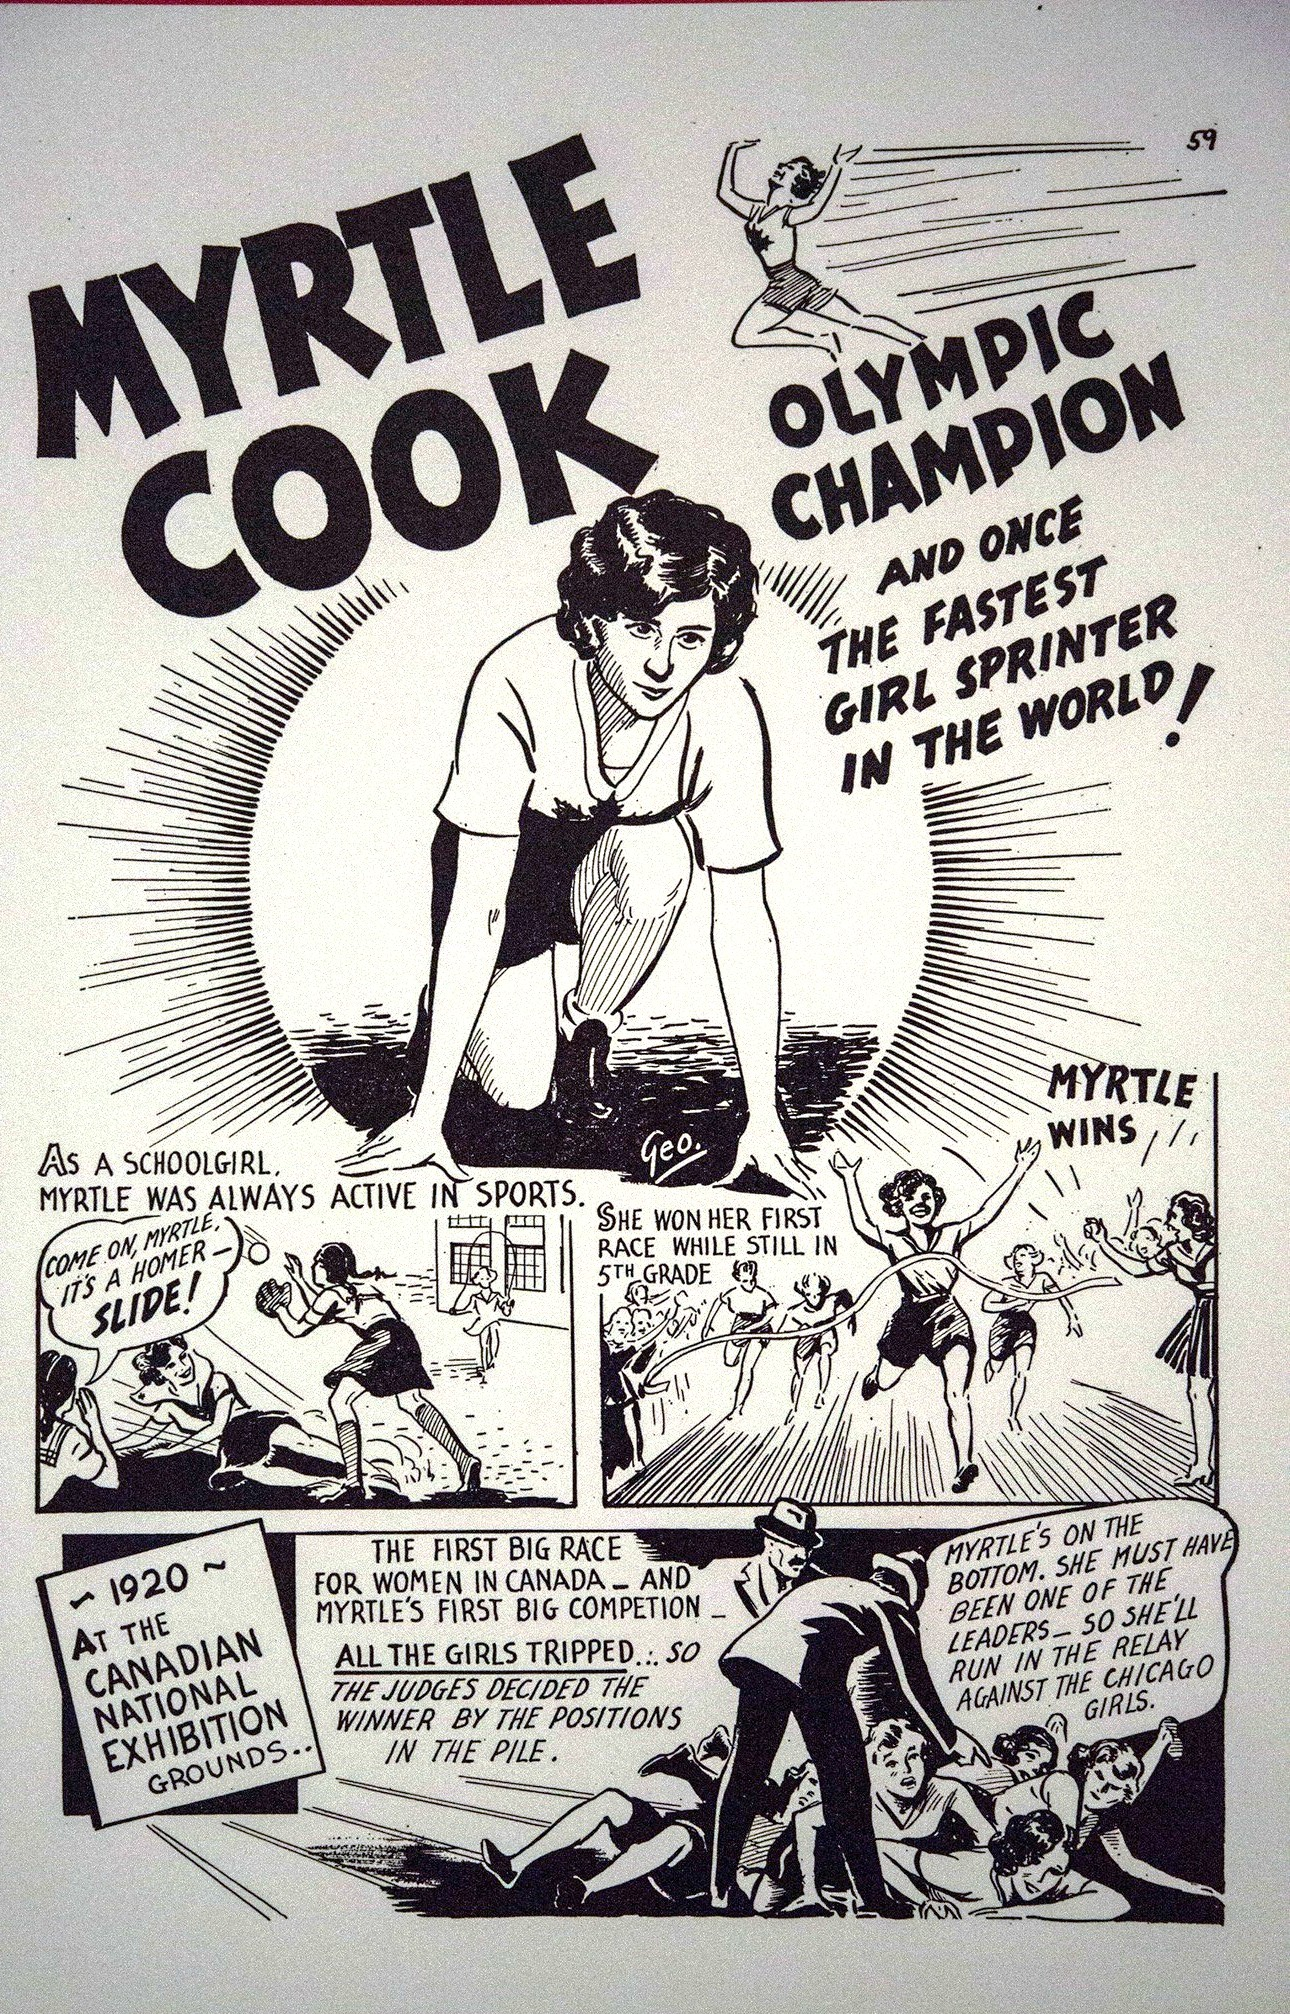 Myrtle Cook: Olympic Champion